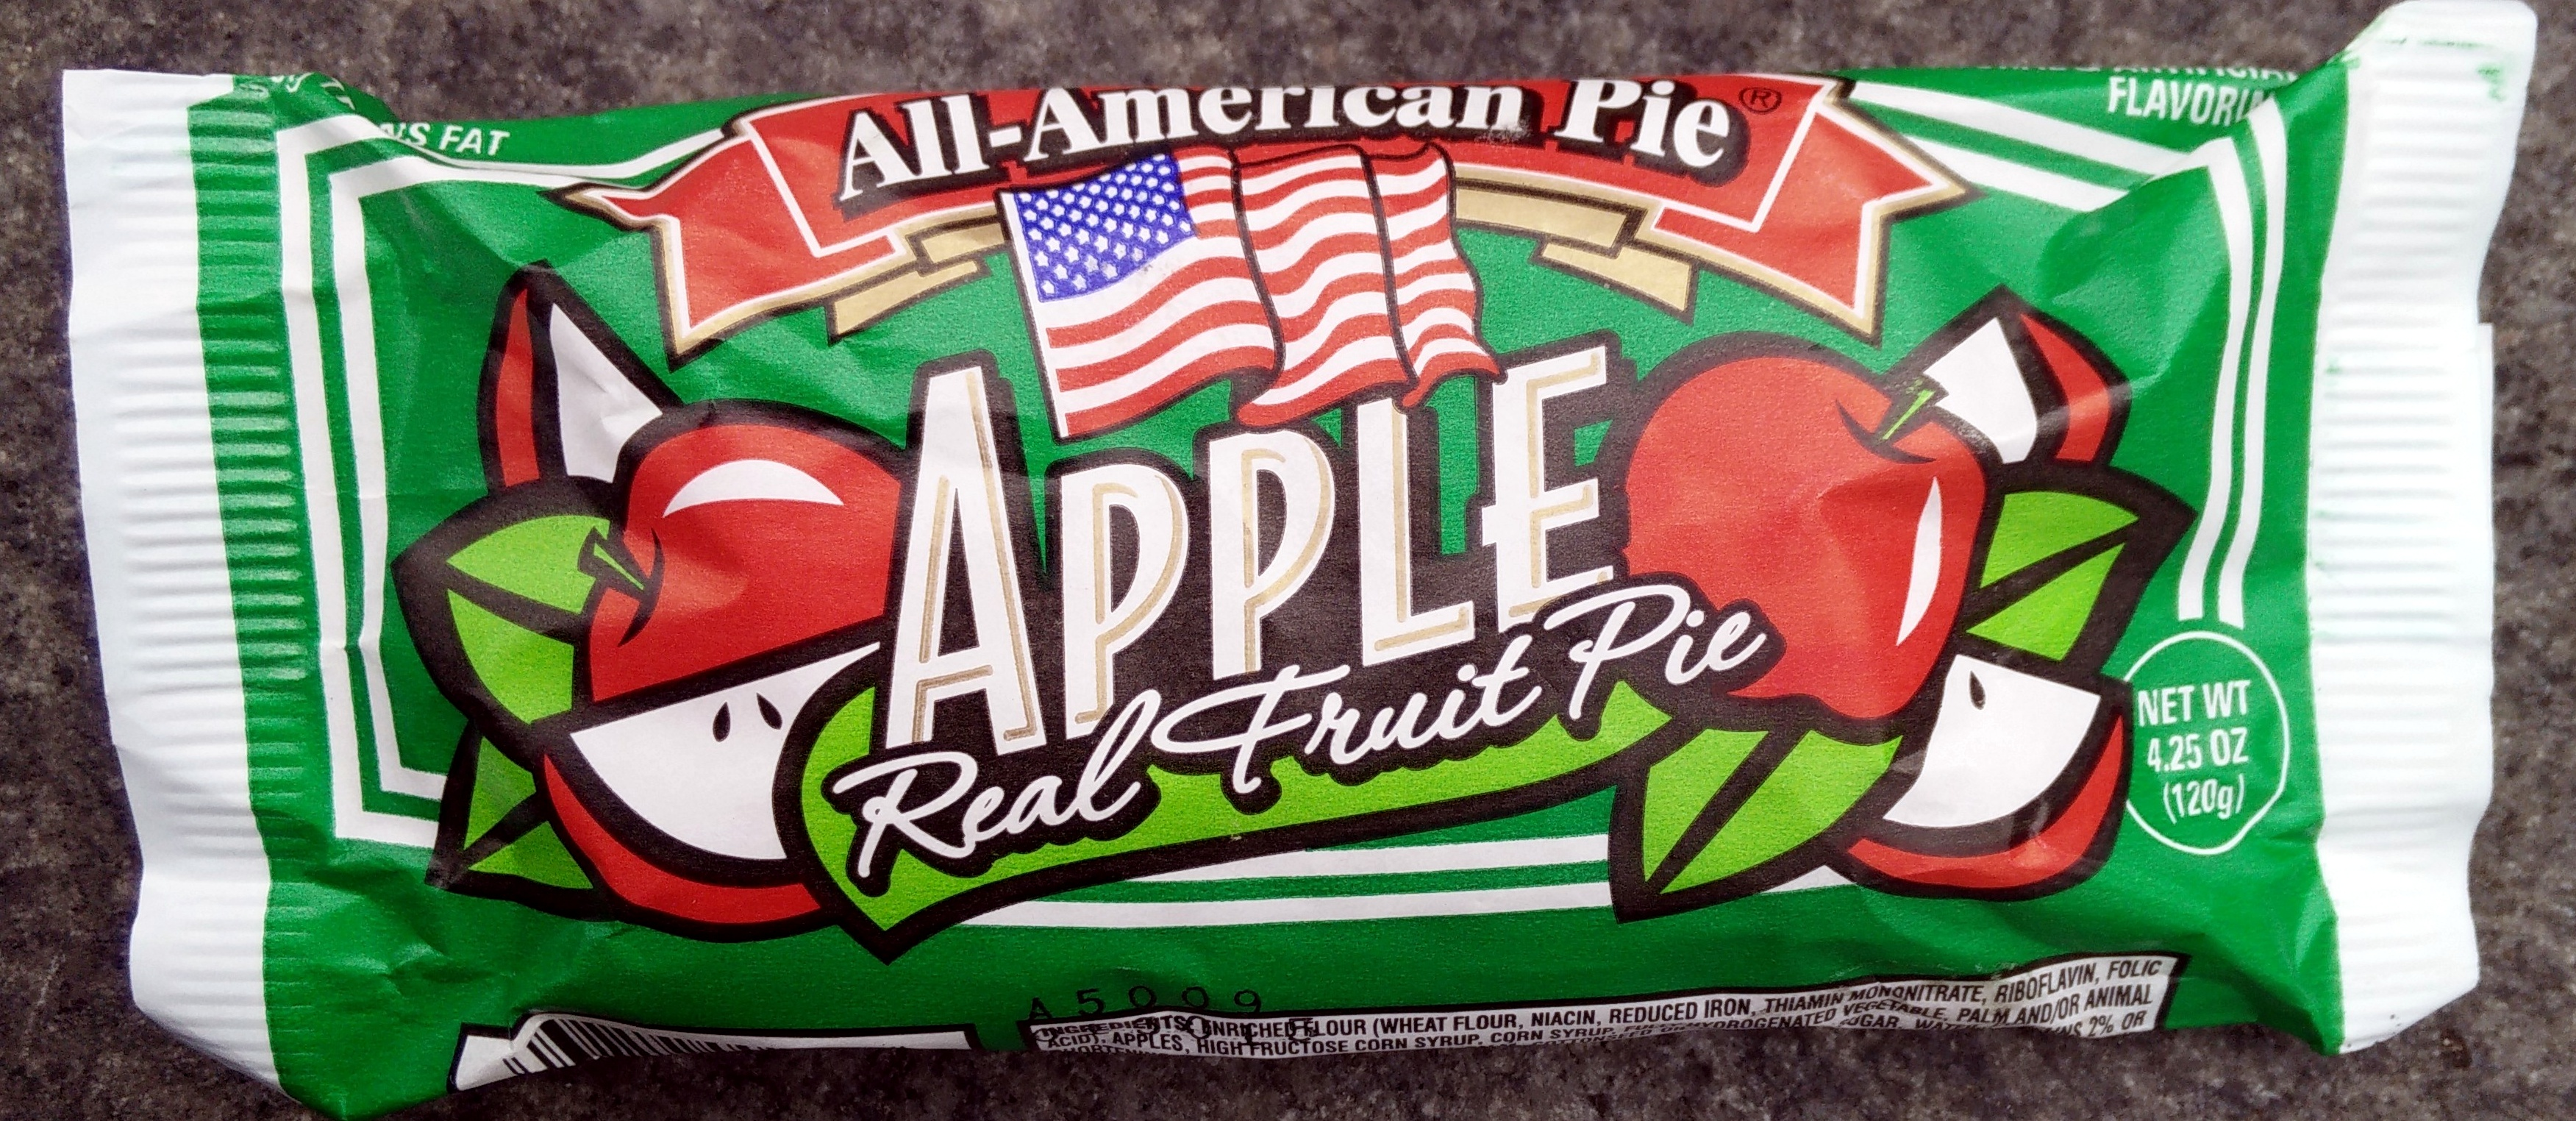 apple real fruit pie - all-american pie